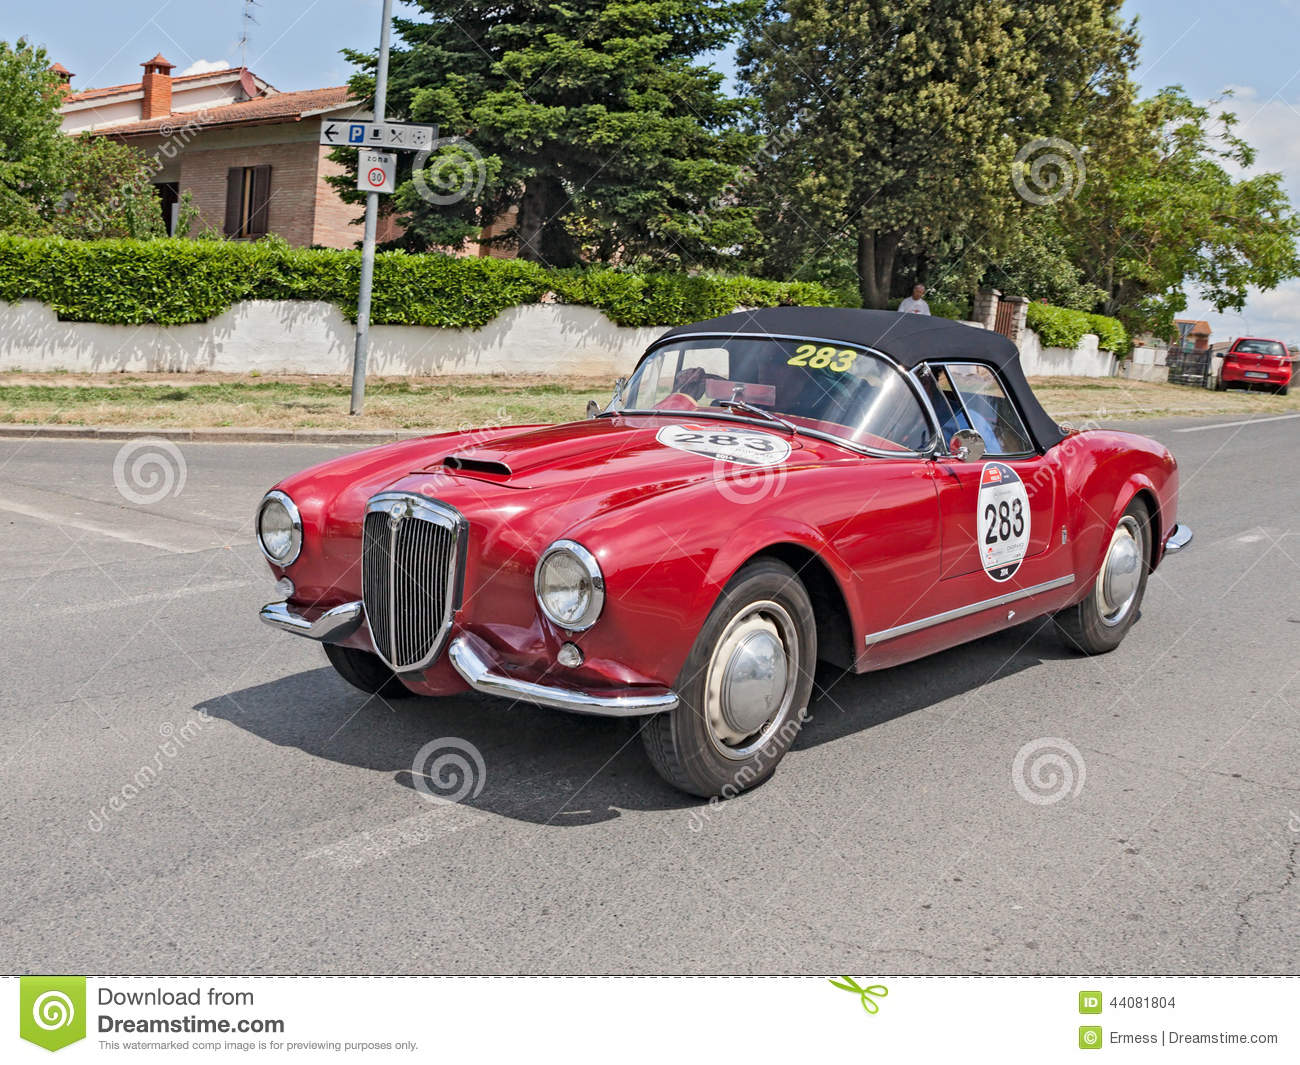 The crew R. Terlizzi D. Catasso on a vintage sports car Lancia Aurelia